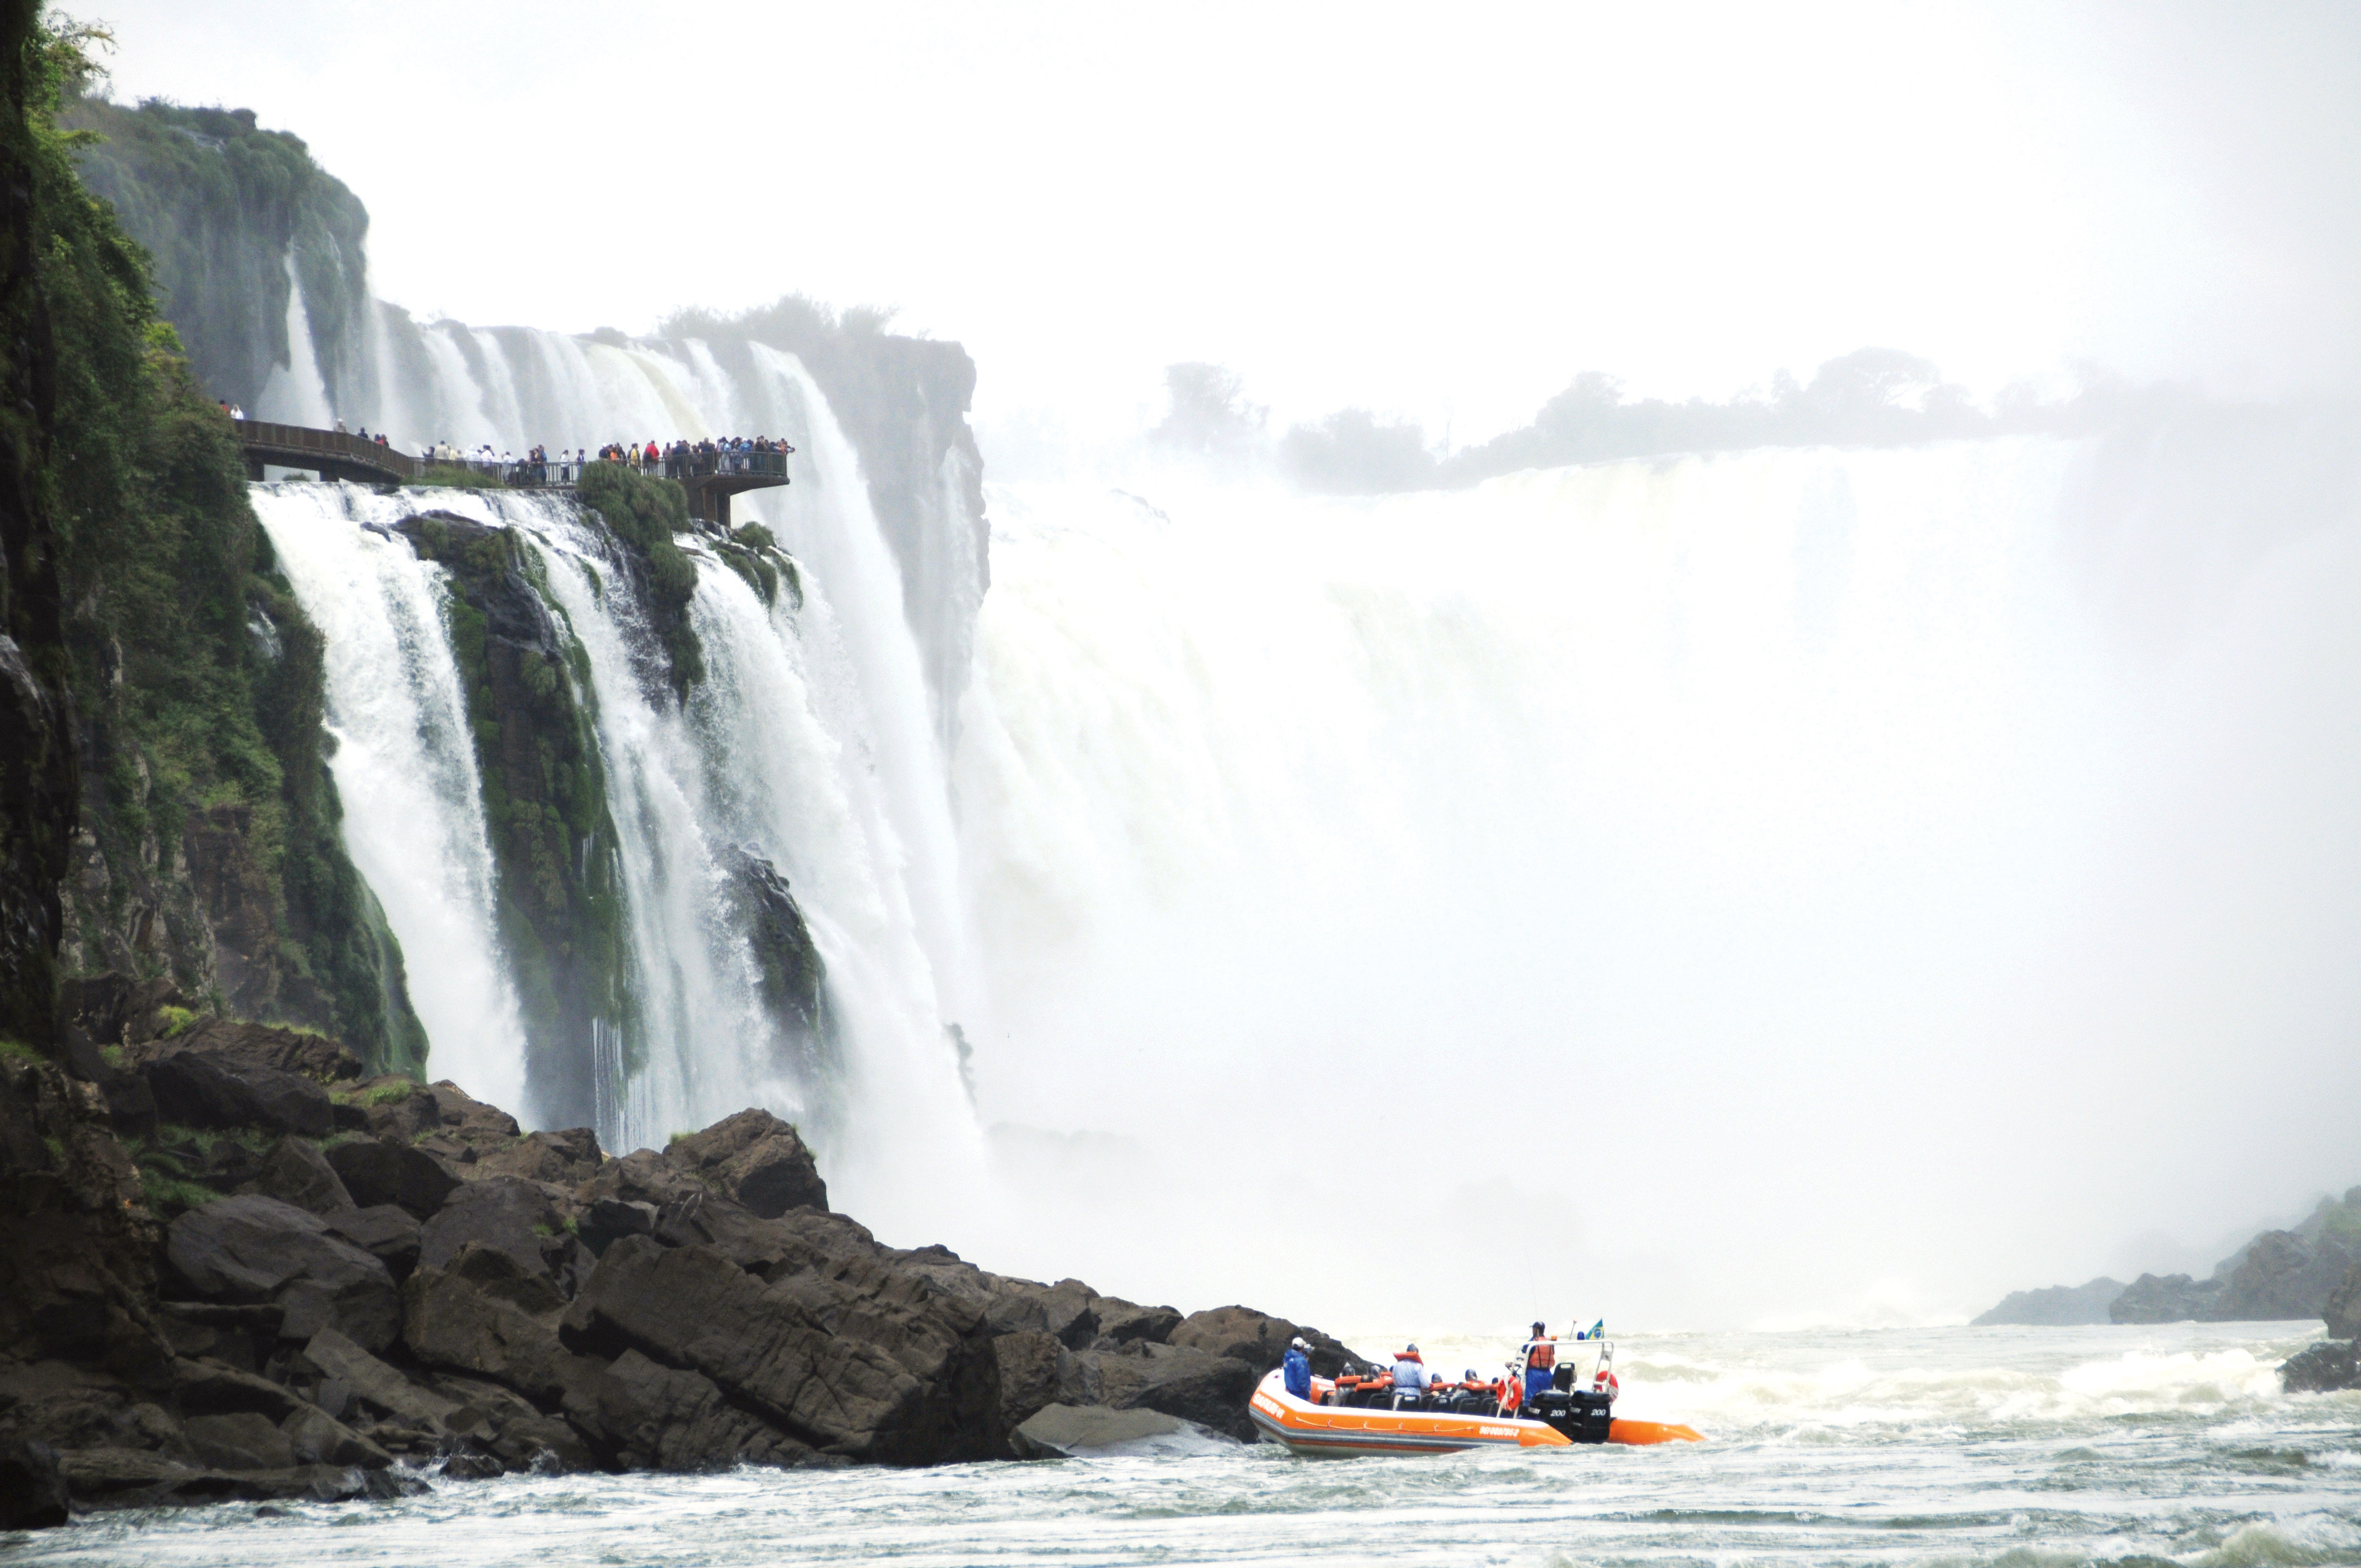 Boat Entertainment Natural wonders Nature Outdoor Activities Outdoors Scenic views Trip Ideas Waterfall water sky mountain rock boating kayaking rapid vehicle extreme sport wind wave water feature Sea kayak